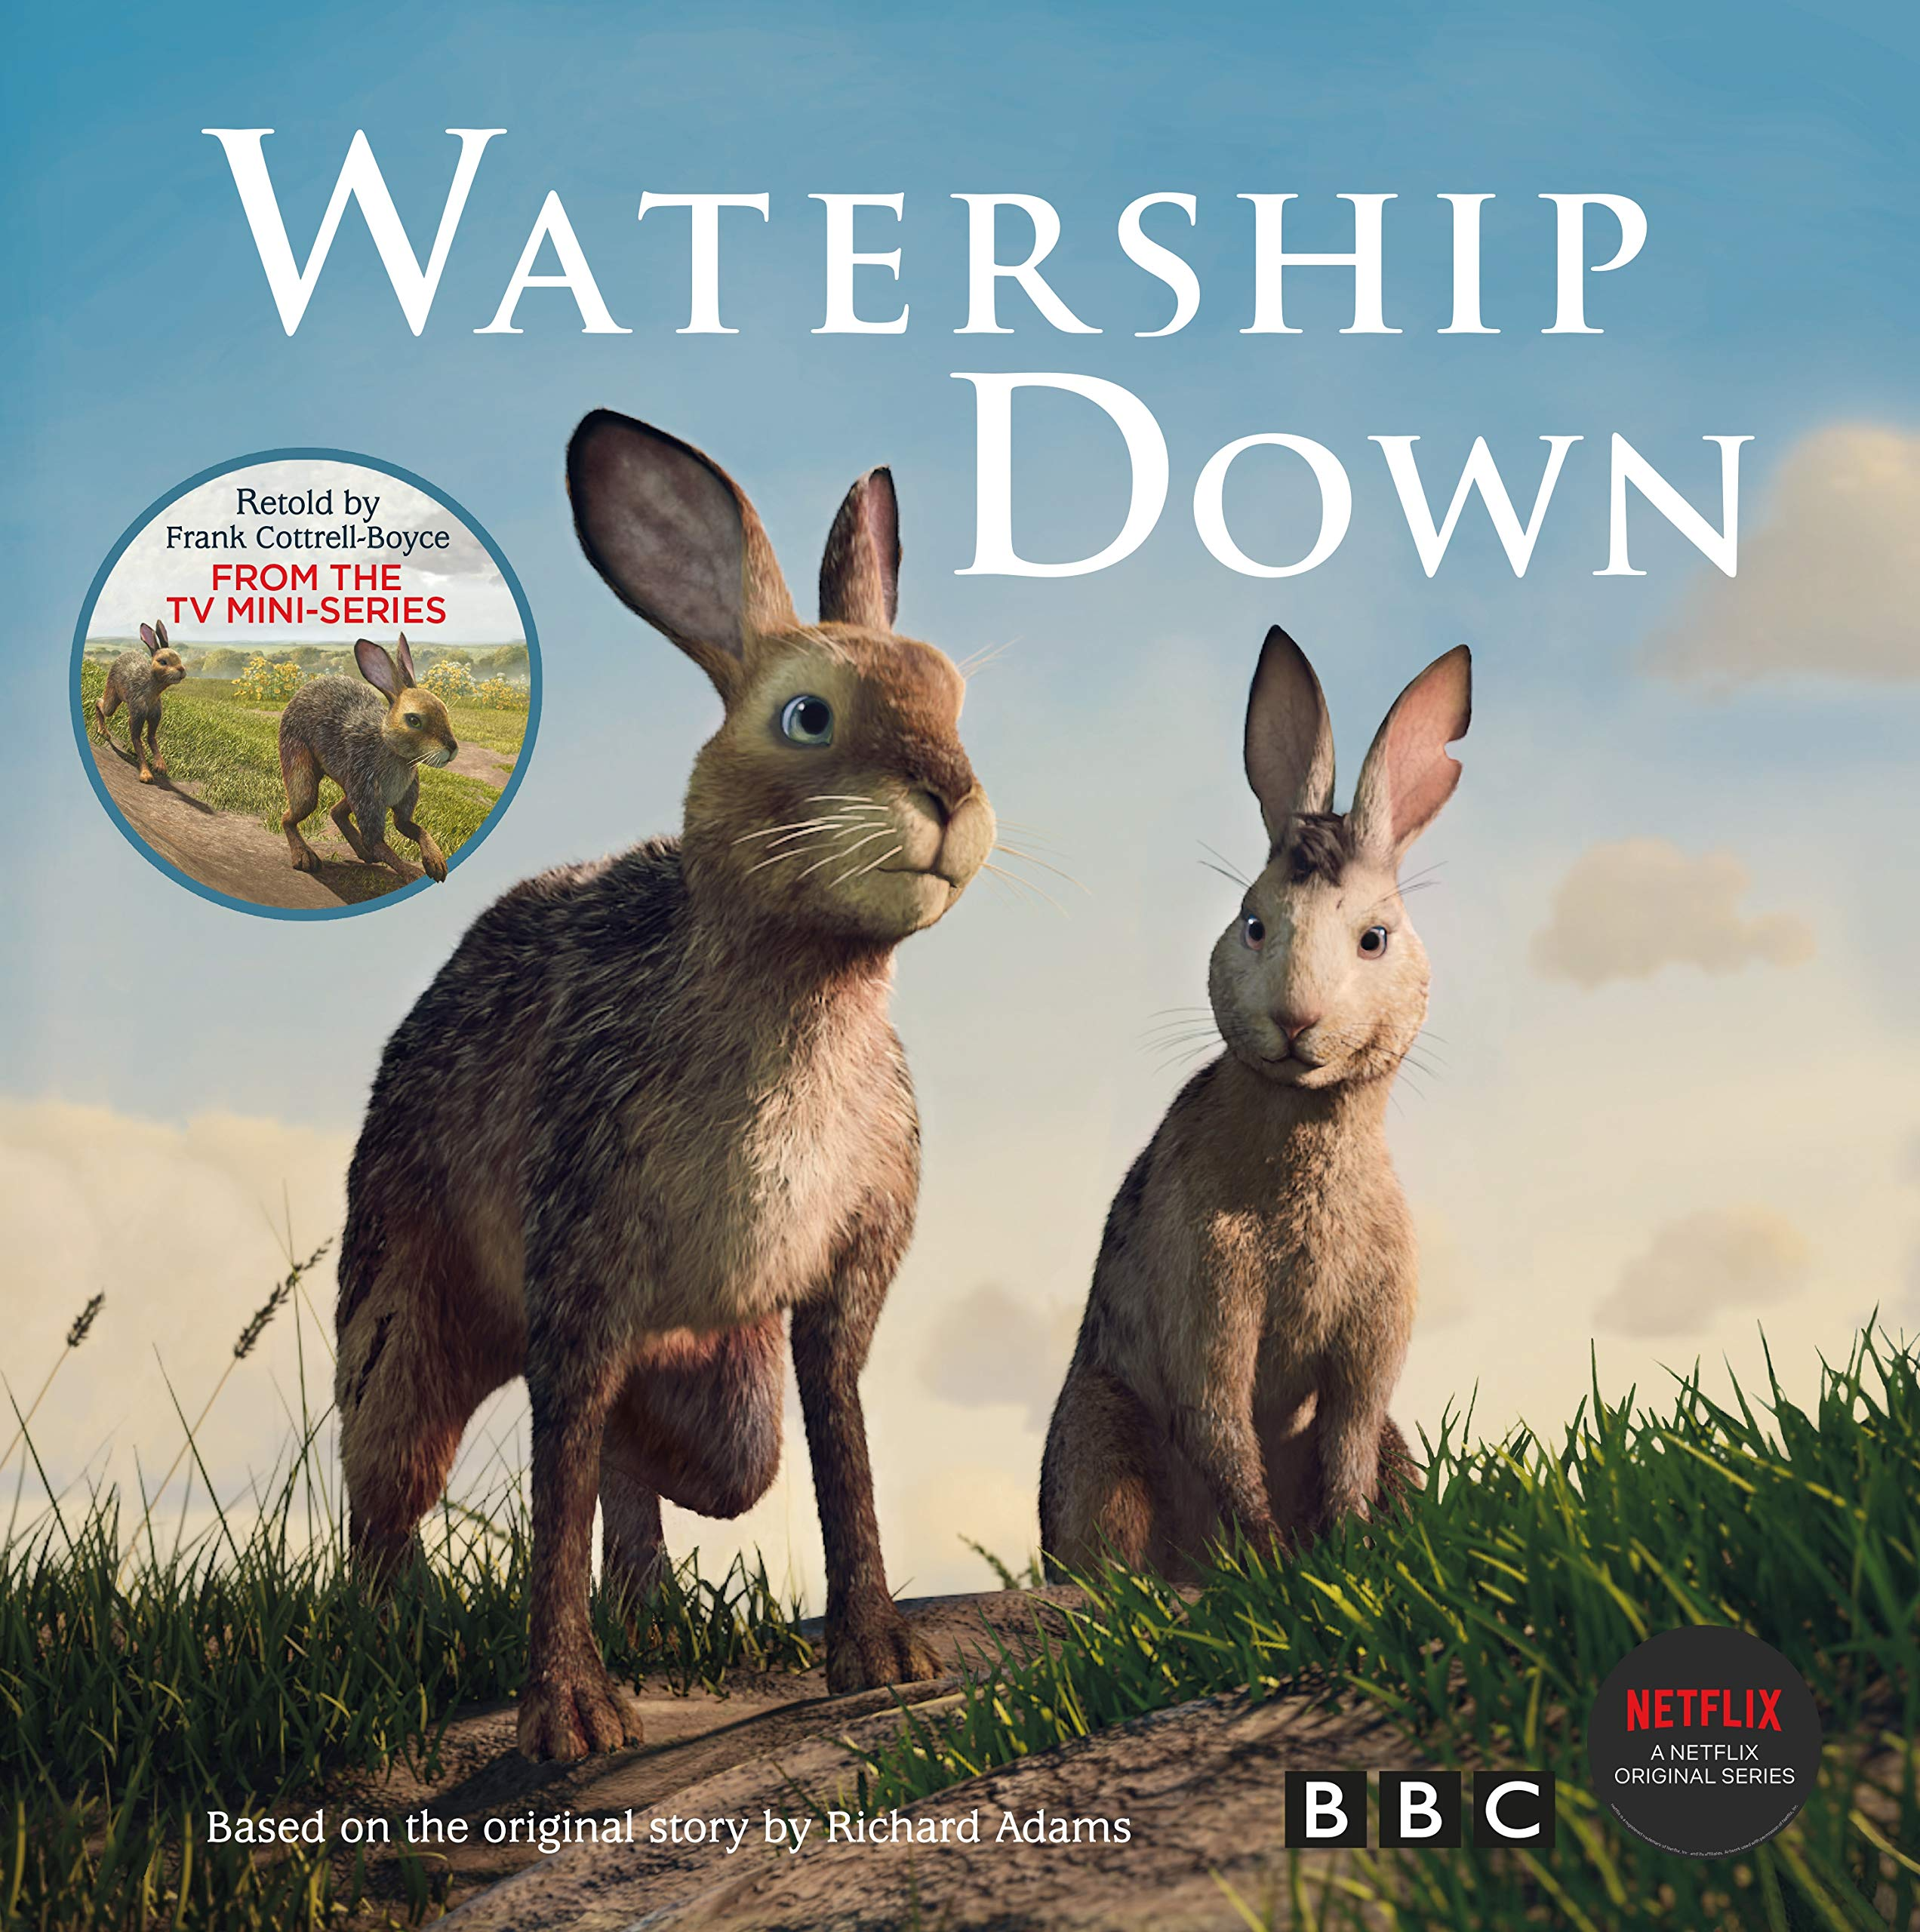 Watership Down: Gift Picture Storybook: Amazon co uk: Frank Cottrell